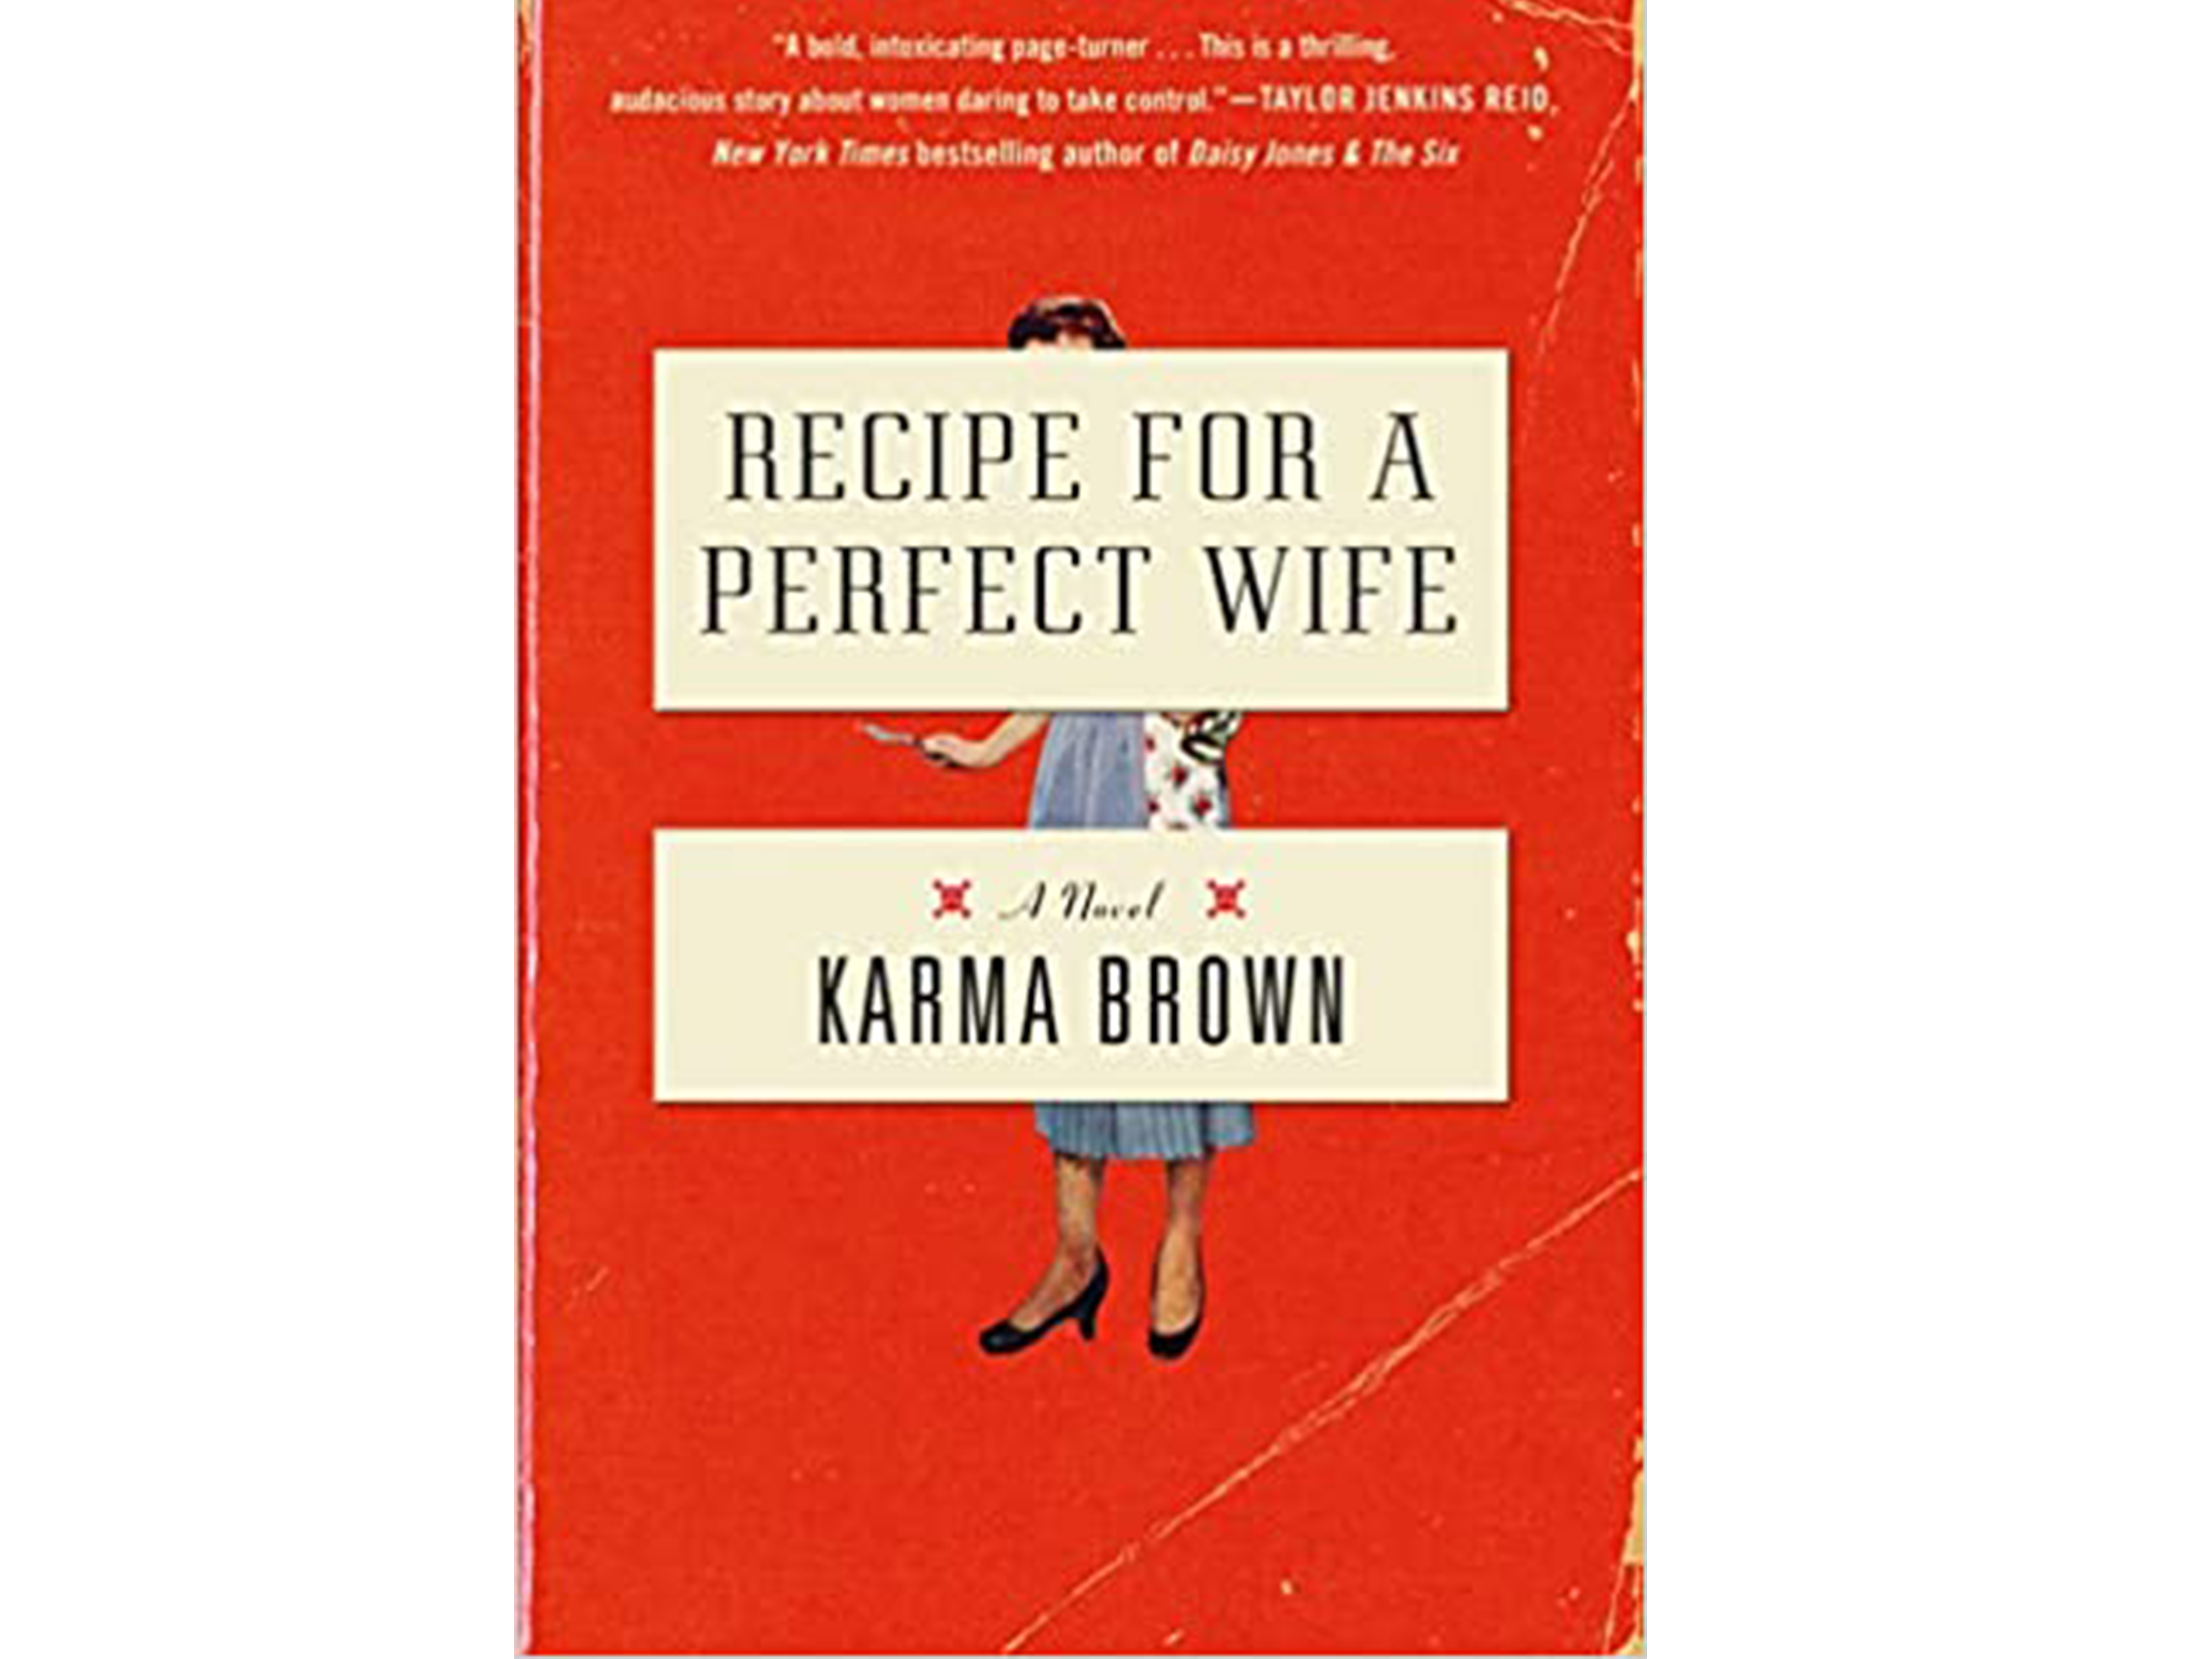 recipe-perfect-wife